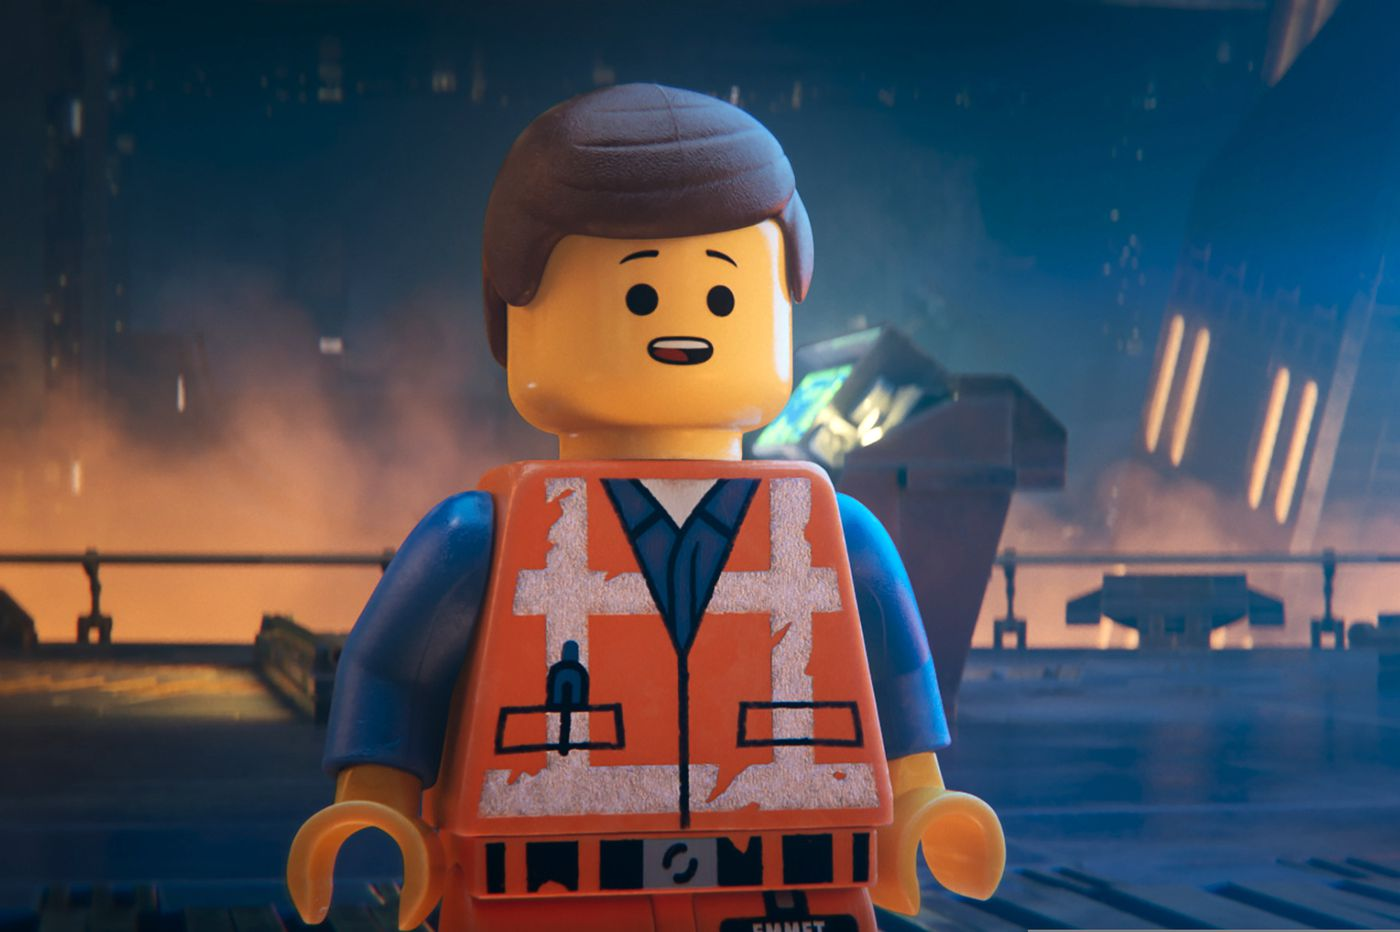 'The LEGO Movie 2: The Second Part': A cobbled together block buster | Movie review